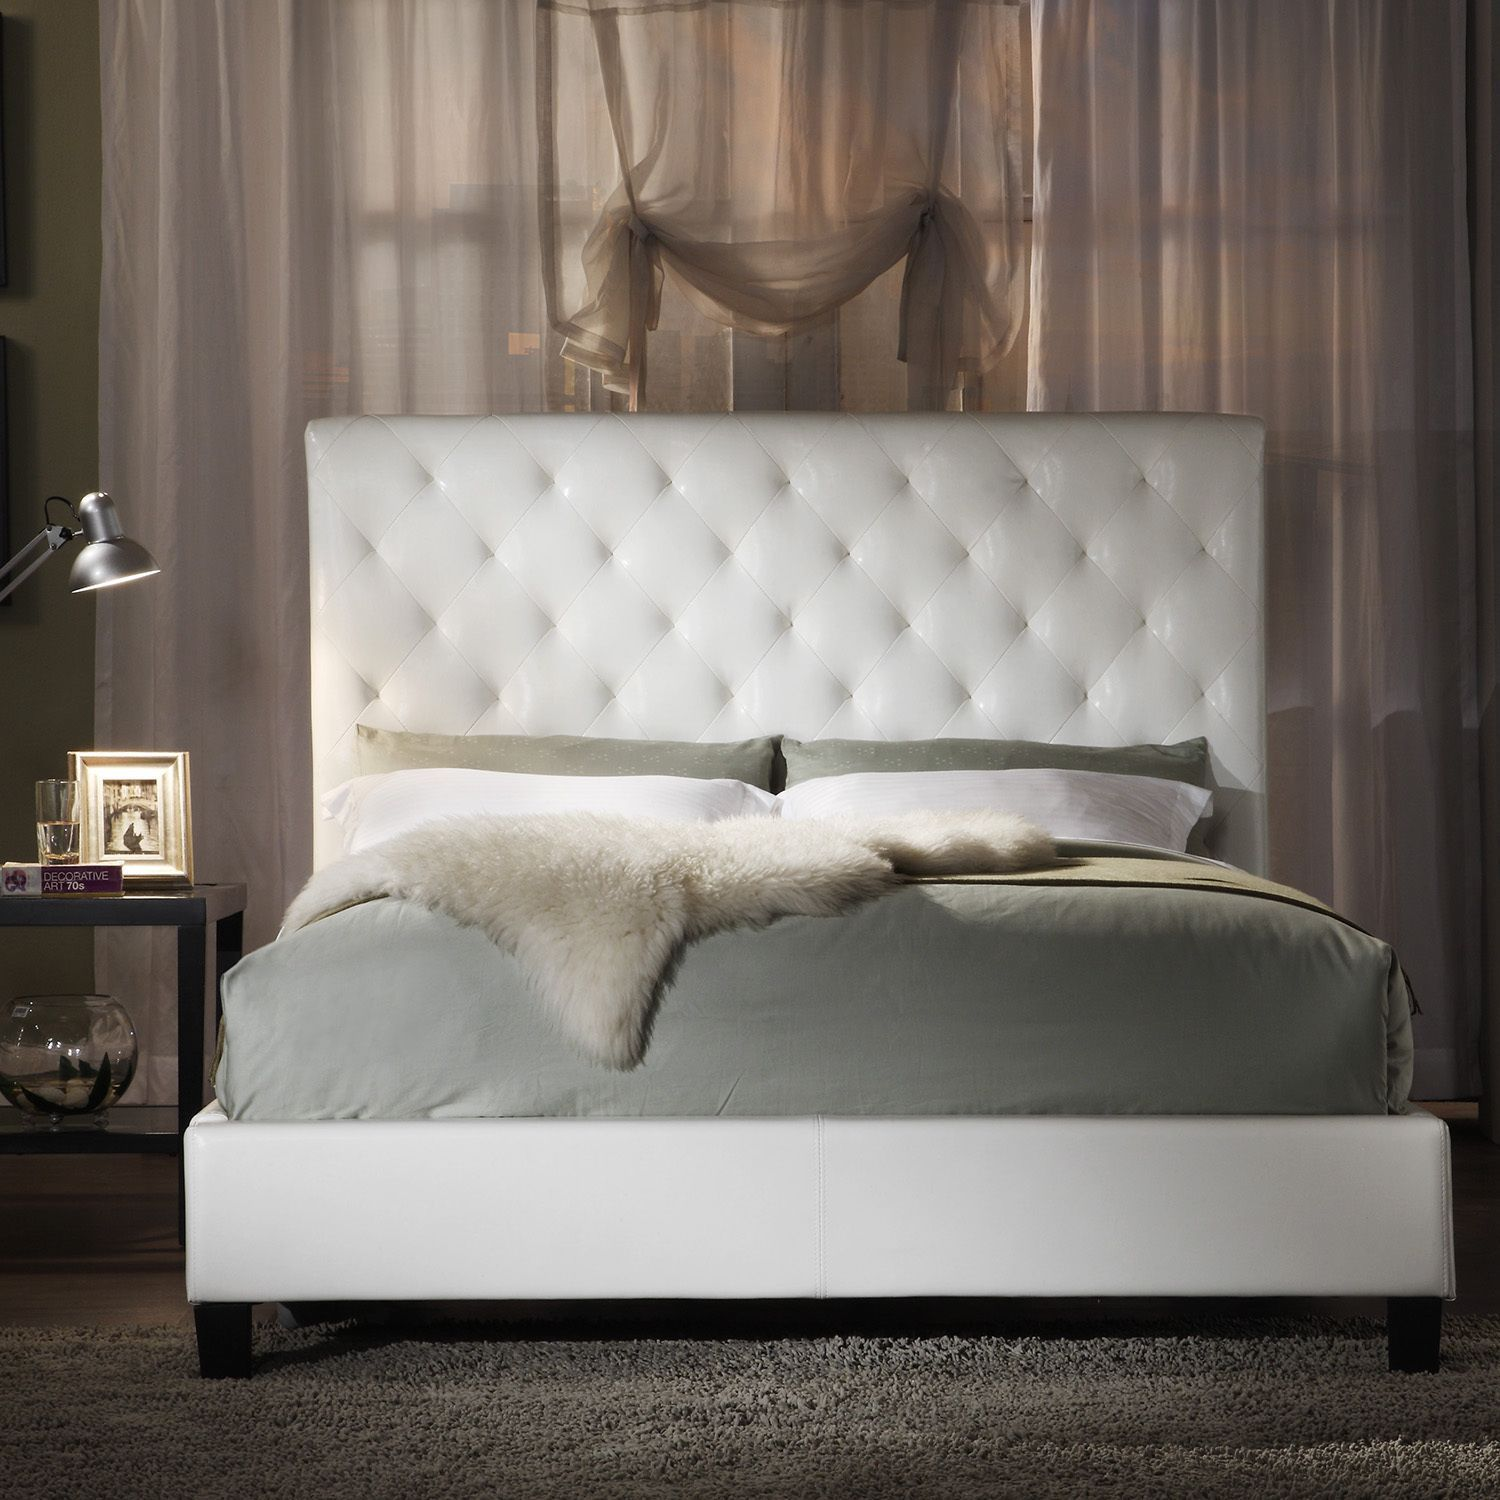 A combination of straight lines and raised features highlight this modern  Sophie white bonded leather king